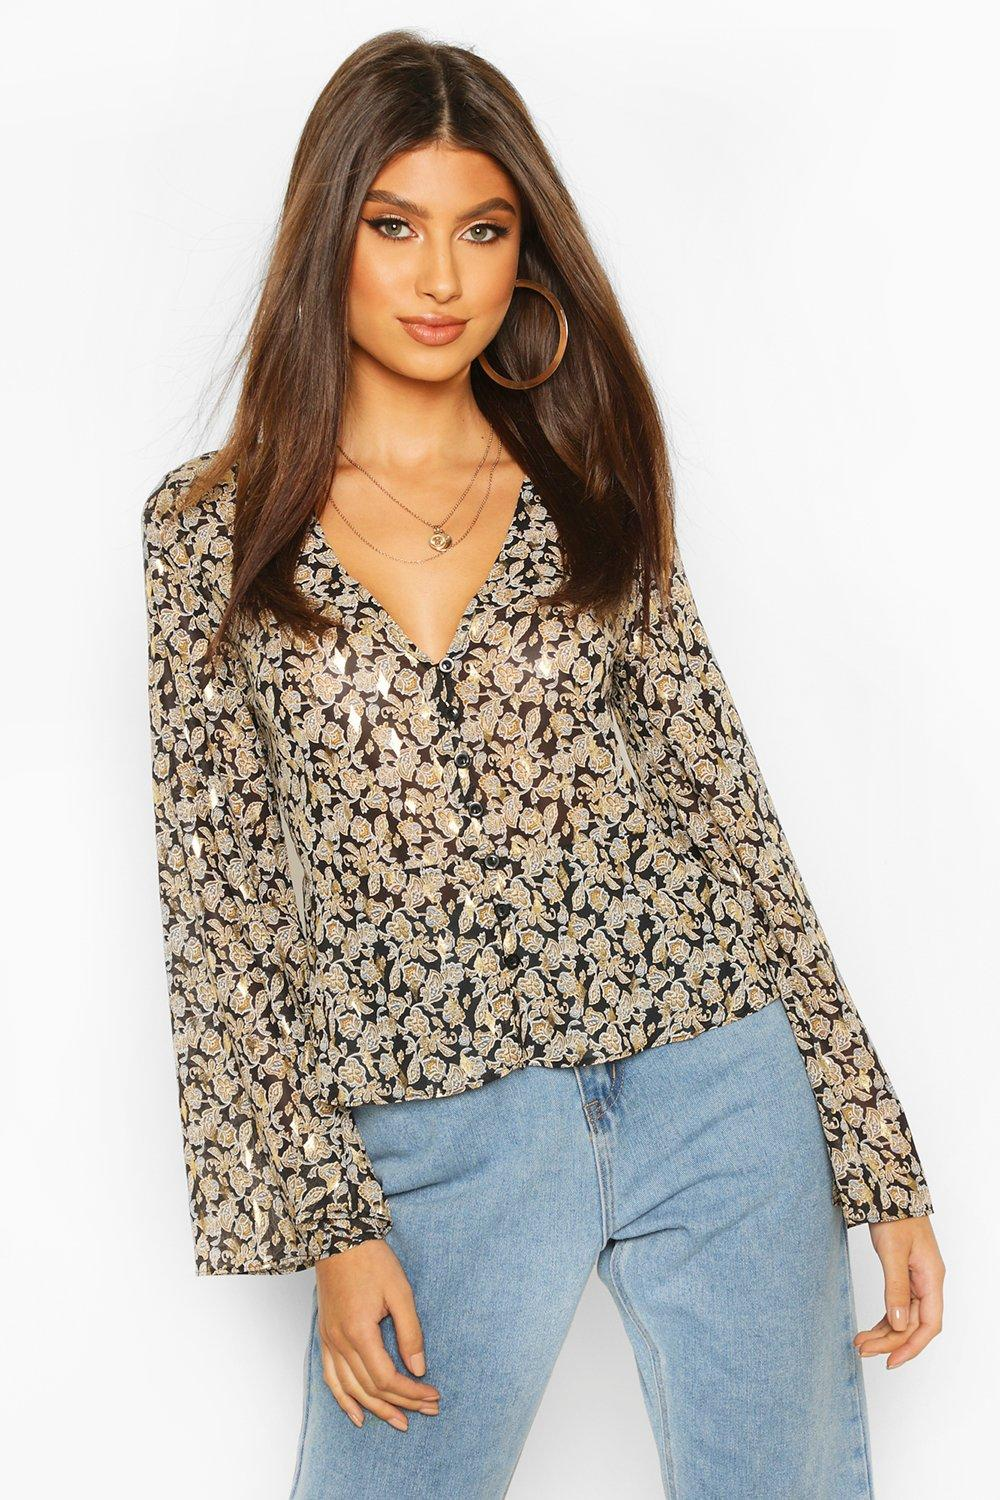 boohoo Womens Metallic Paisley Button Through Blouse - Black - 14, Black